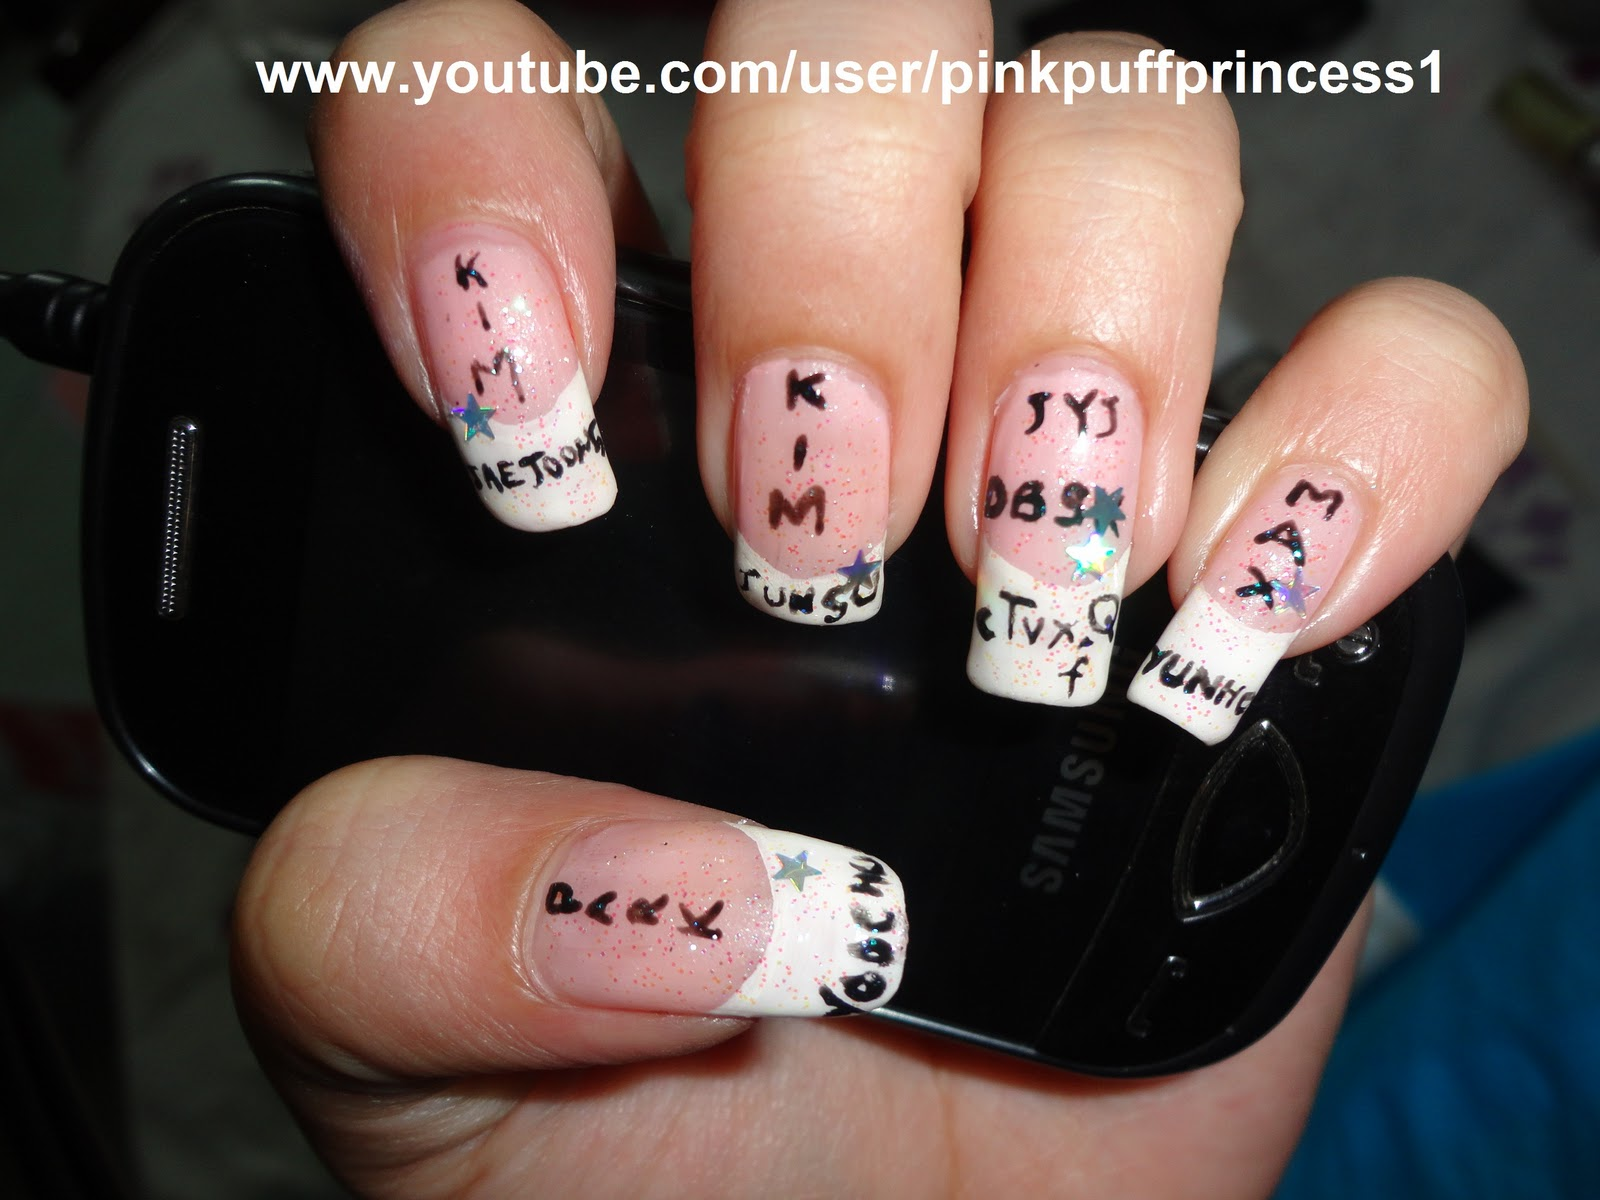 Nail Designs With Names On Them